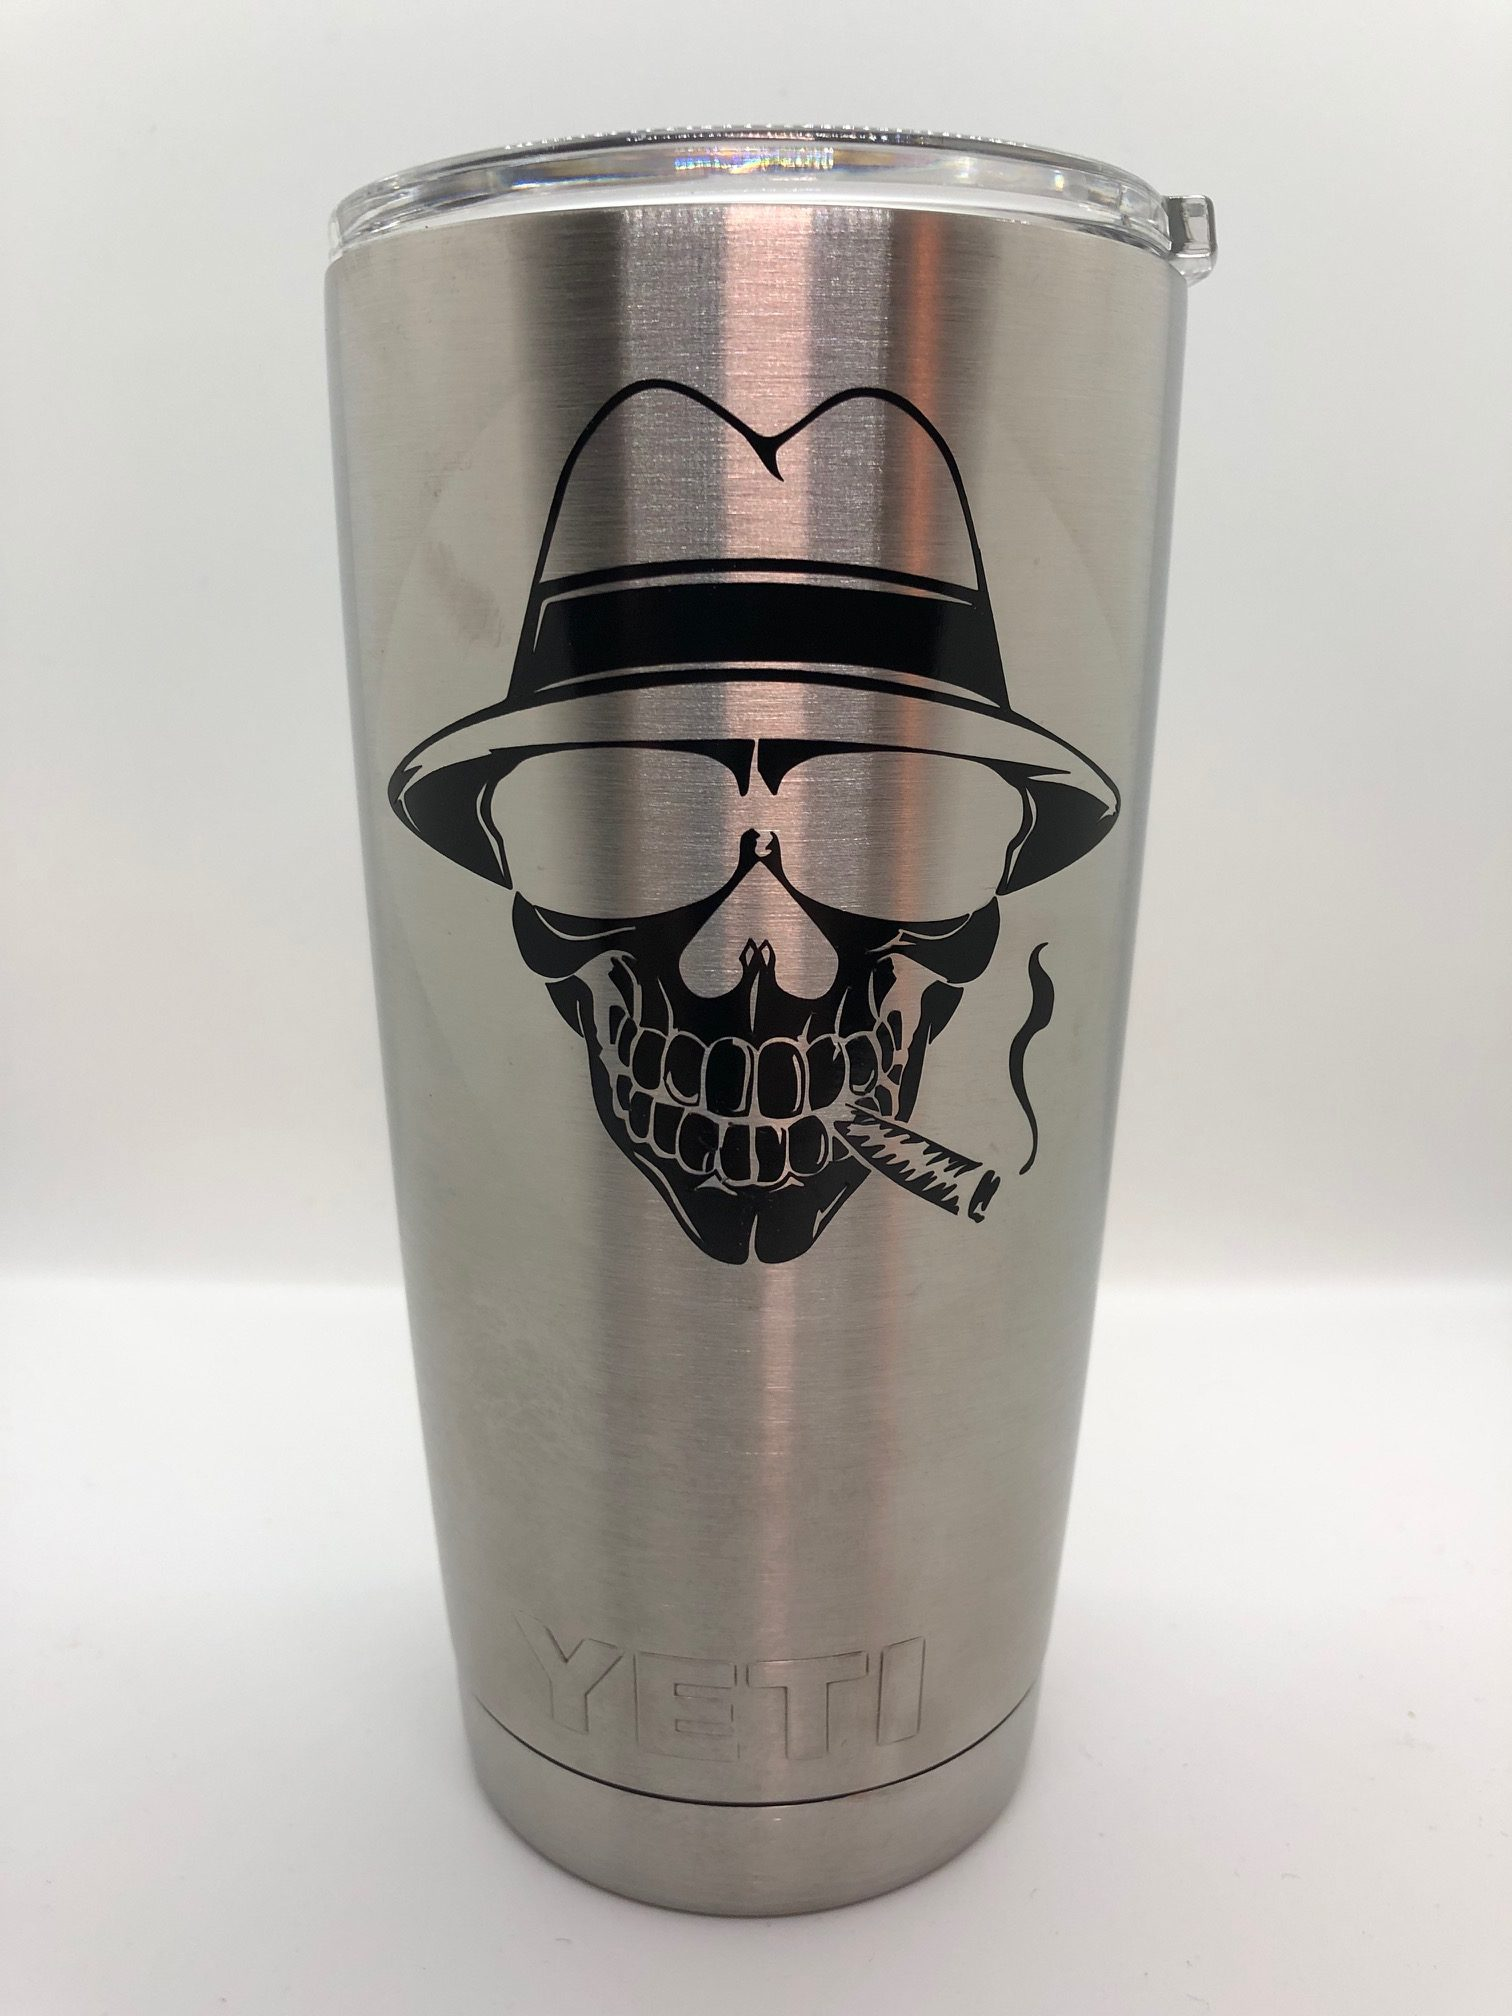 Mobstyle, Weirdo, UGA Yeti Cup